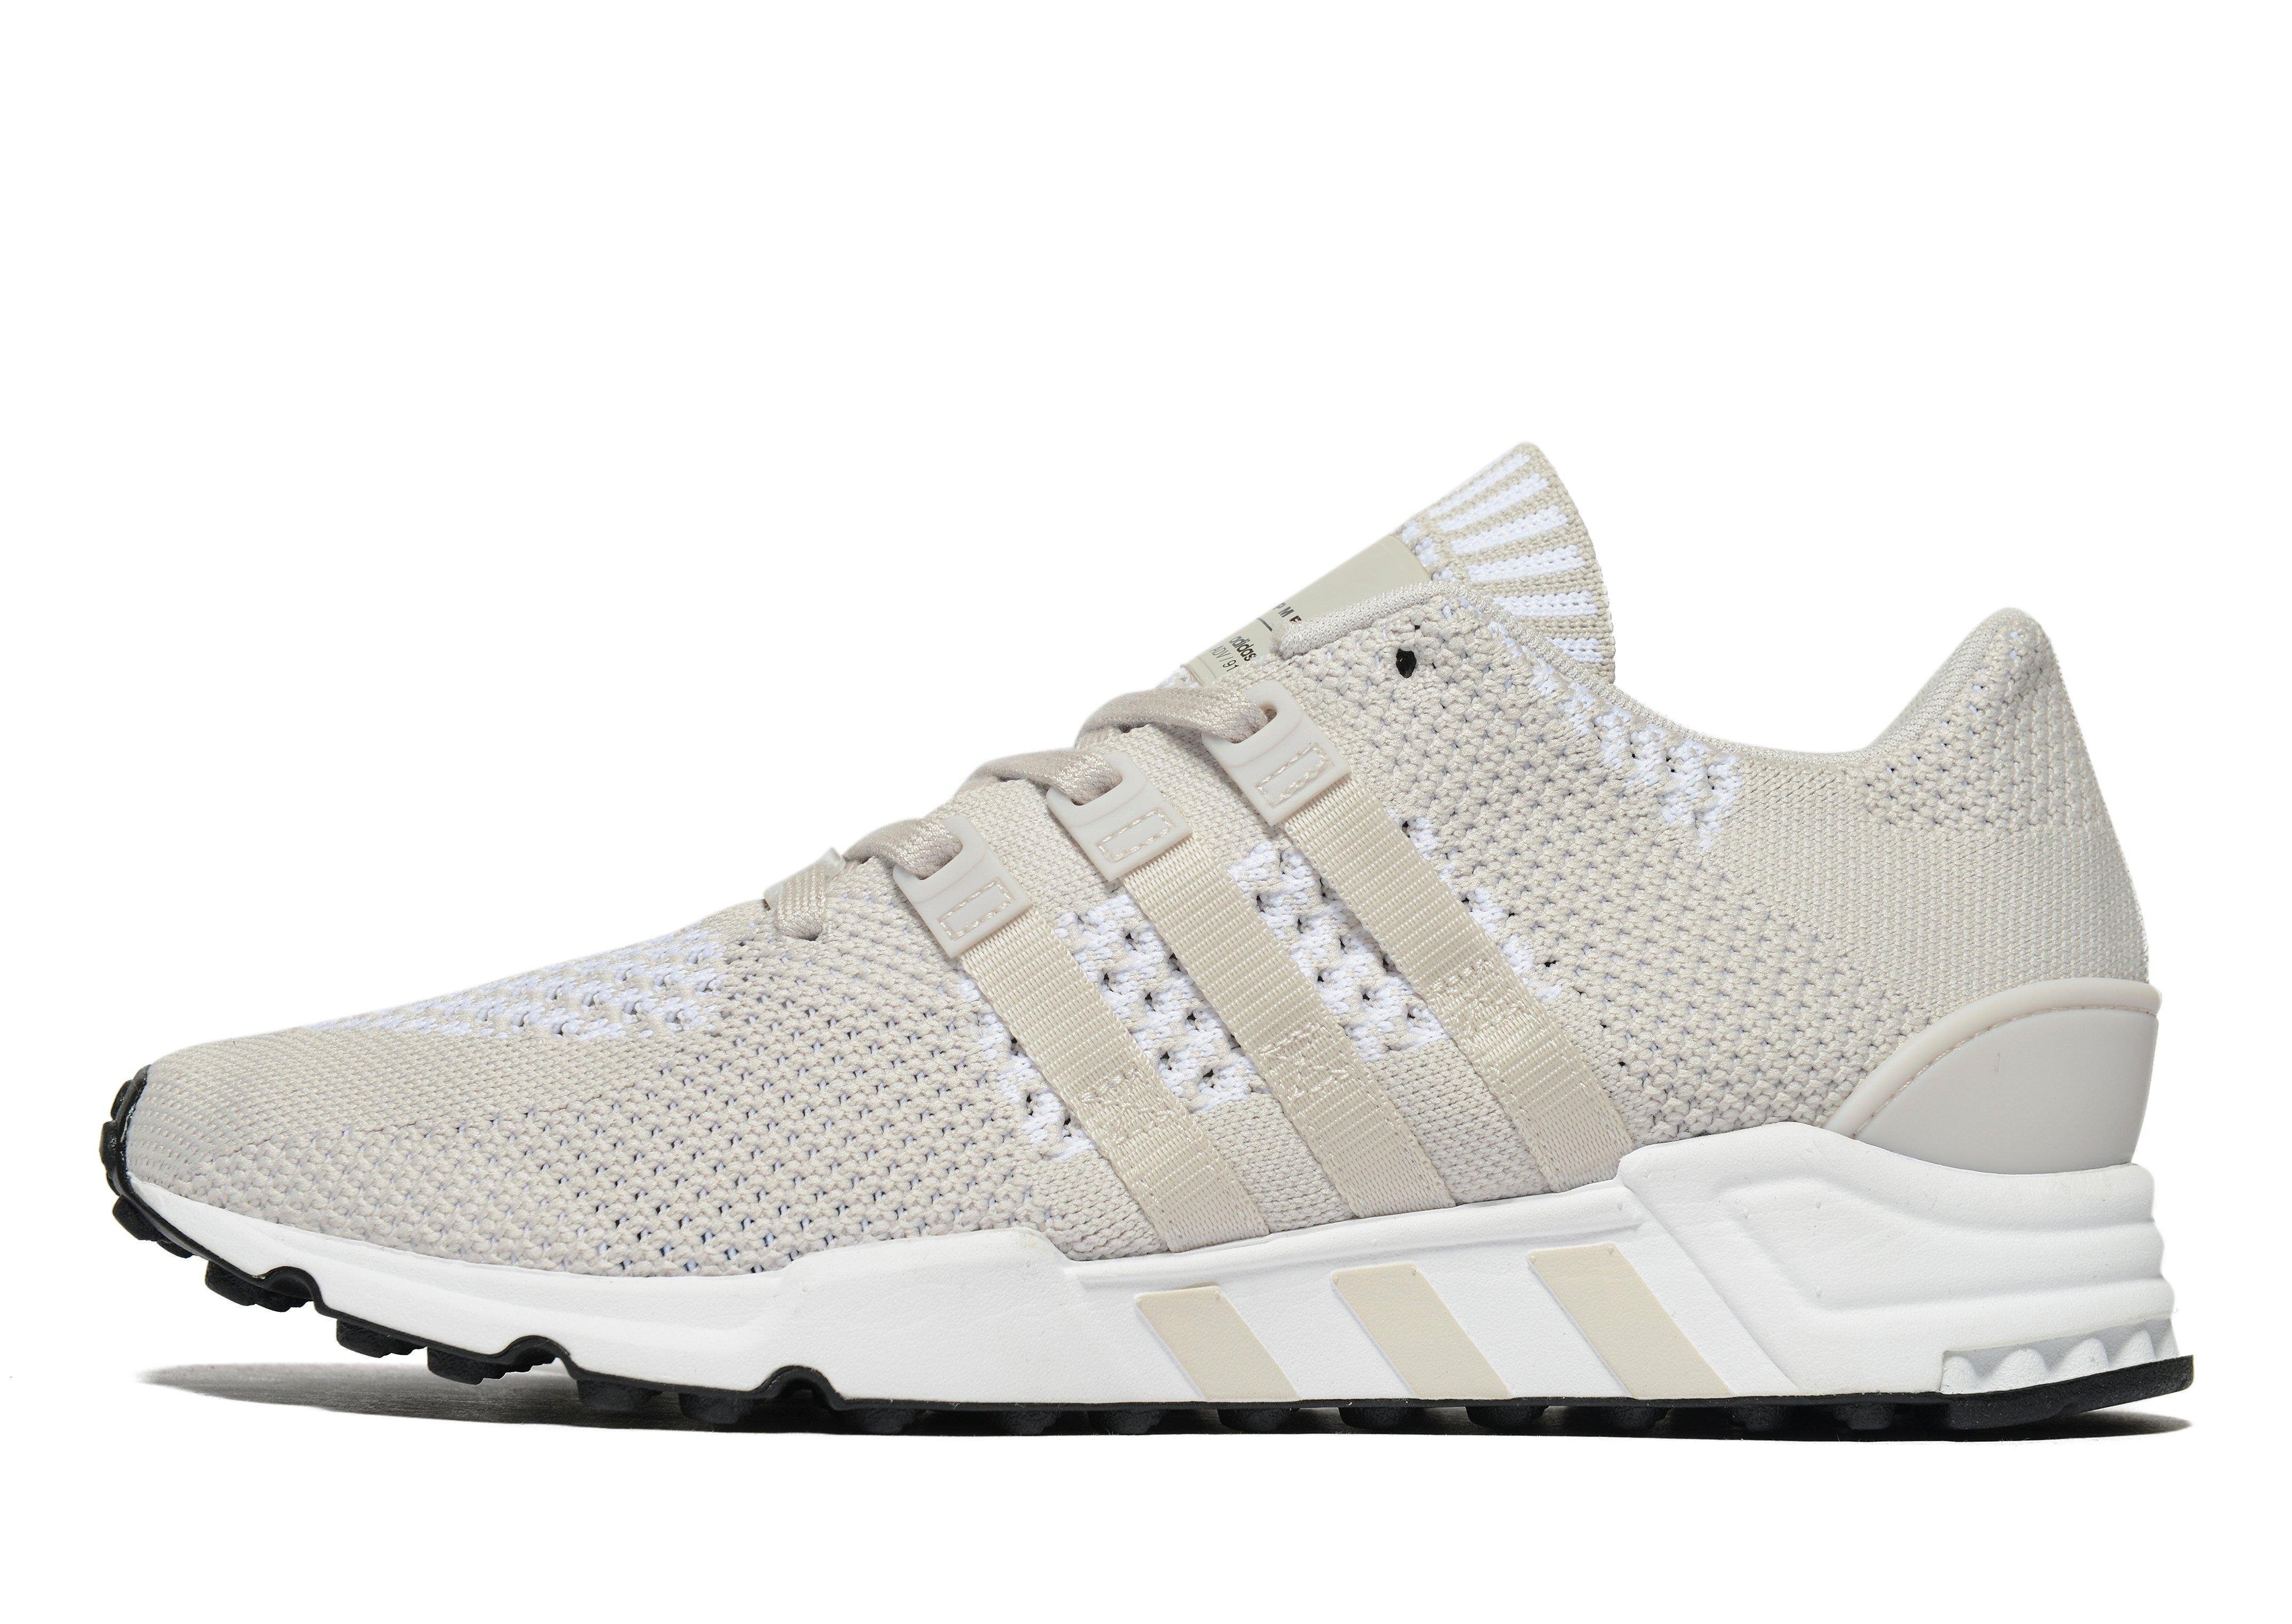 cheap sale look for new product Adidas Originals White Eqt Support Rf Primeknit for men